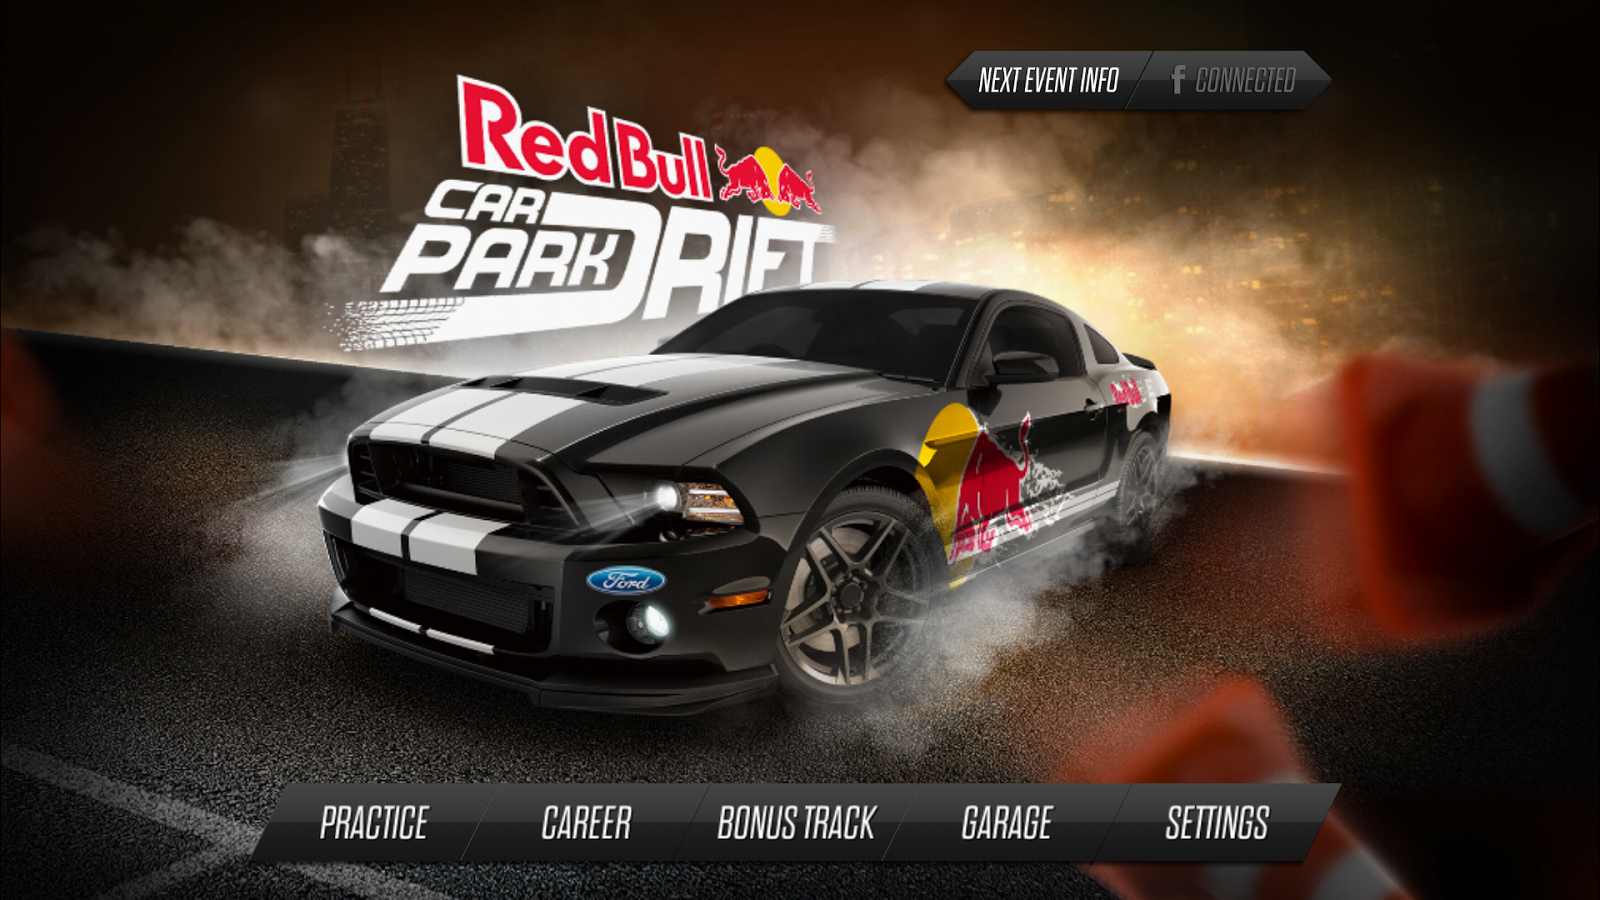 Red Bull Car Park Drift Android Apps On Google Play